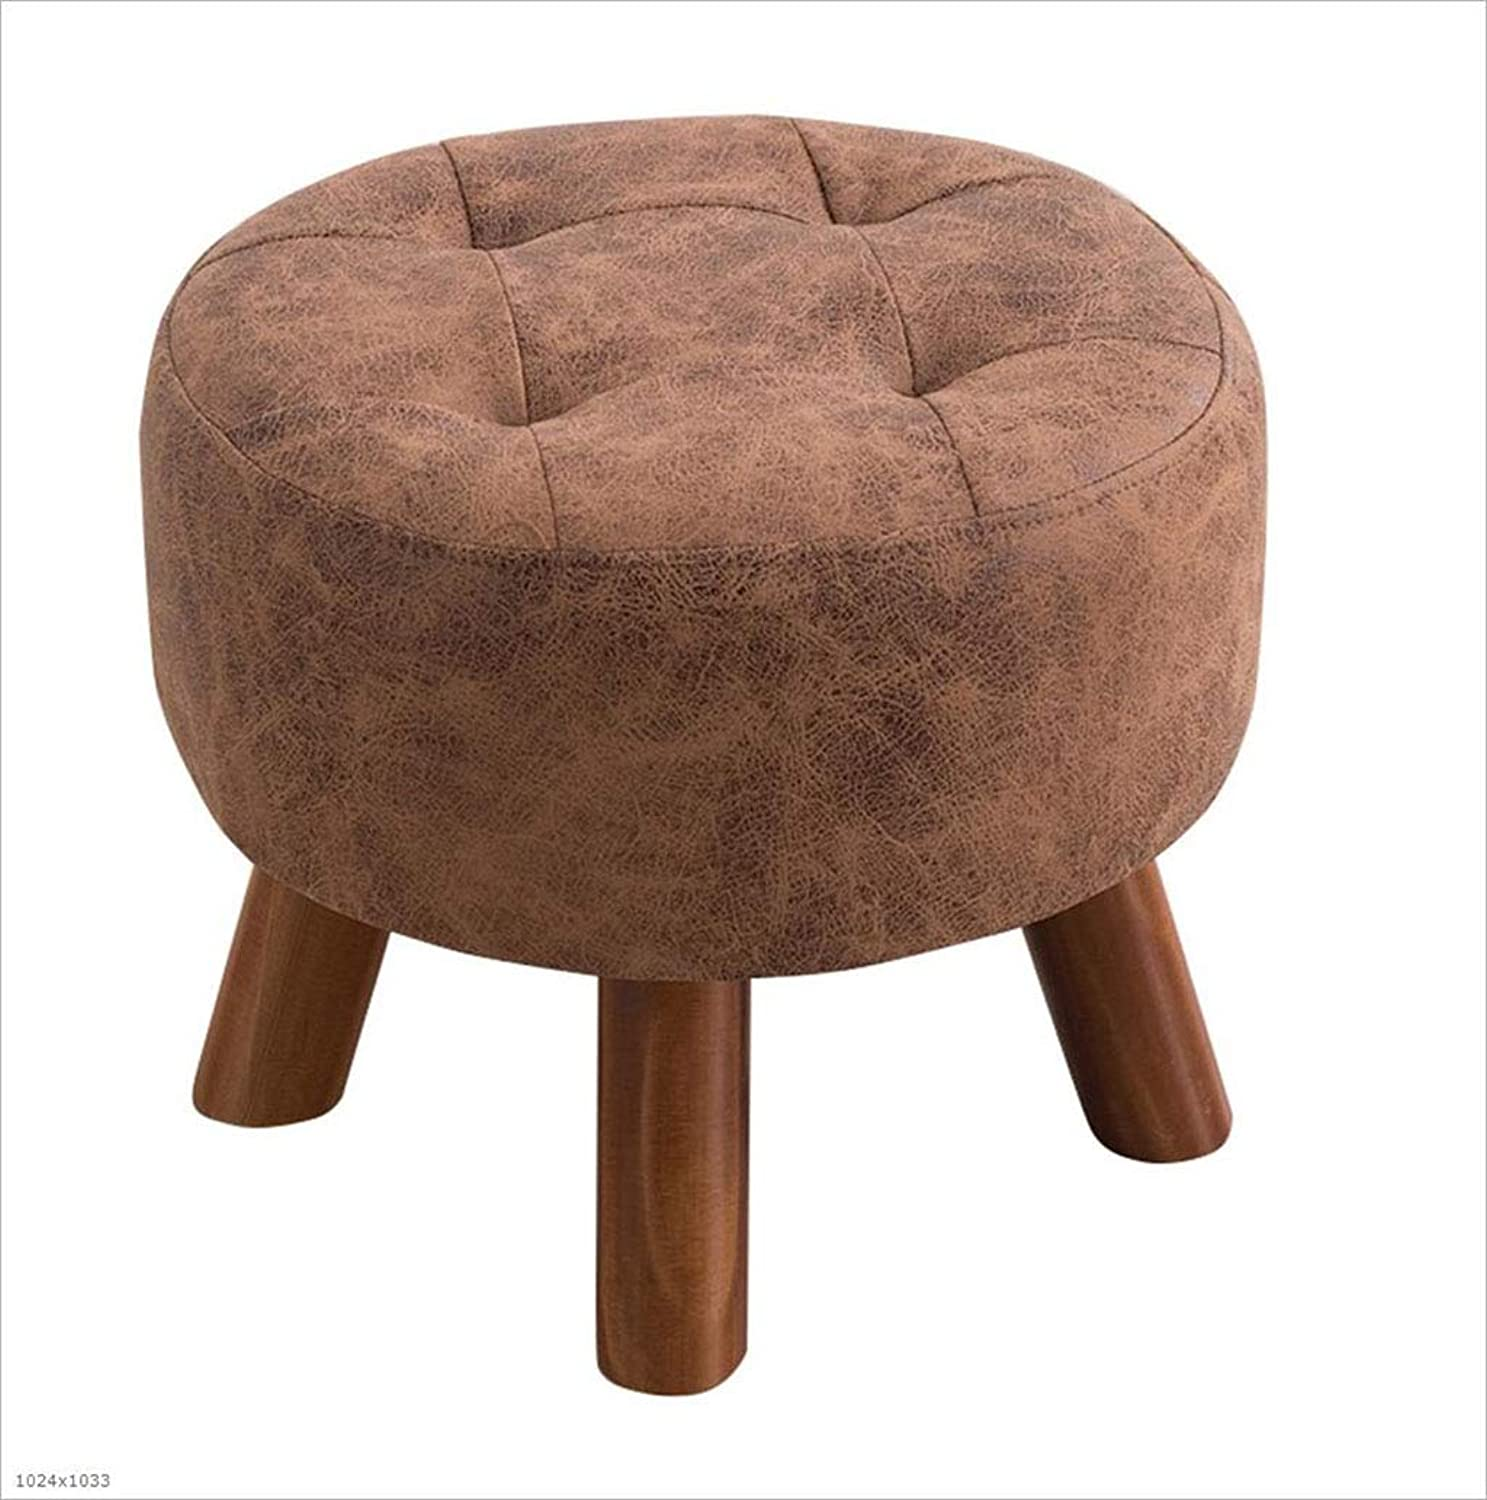 Replacement shoes Stool Solid Wood Stool Stool Fashion Sofa Stool Coffee Table Wearing shoes Sitting Pier,A